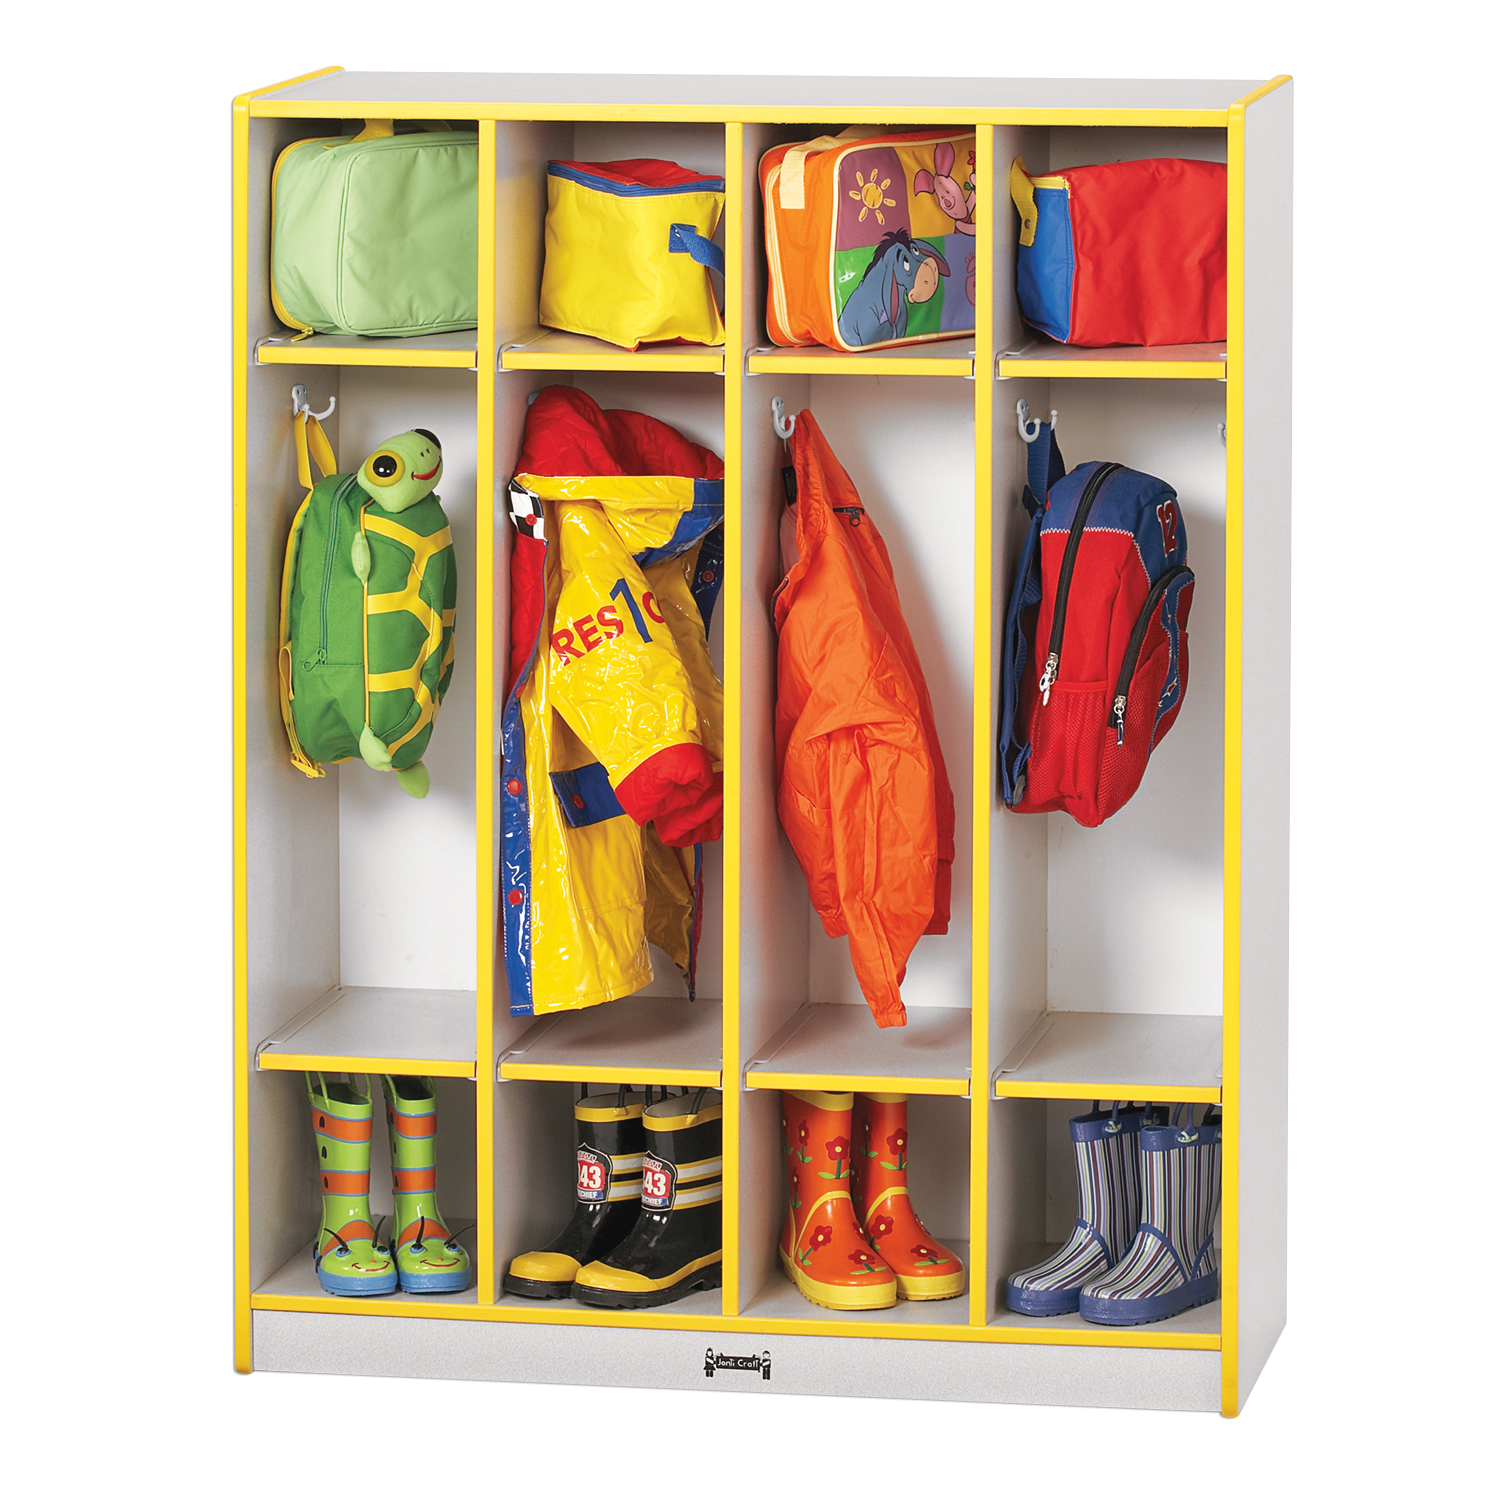 Offex School Kids Belonging Storage 4 Section Coat Locker - Yellow